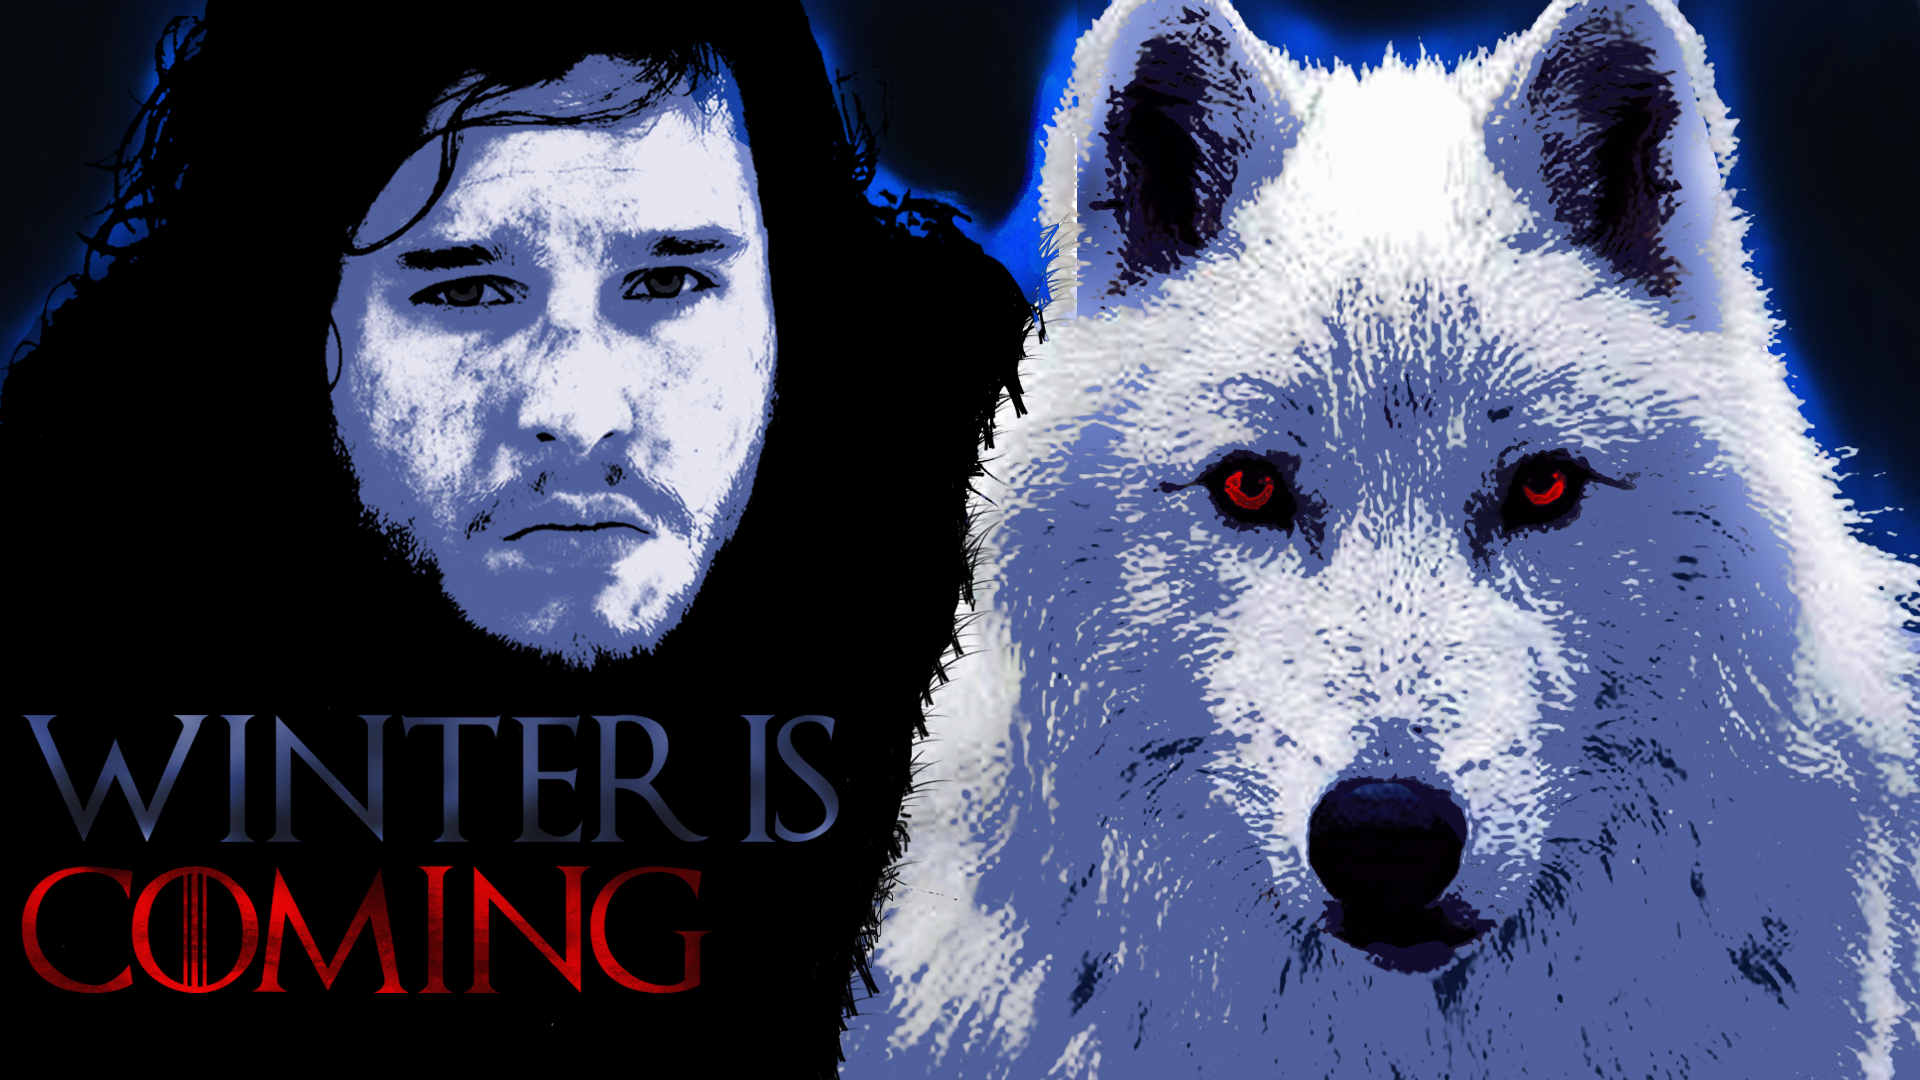 Jon Snow Stark Winter is coming blue game of thrones wallpaper 1920x1080